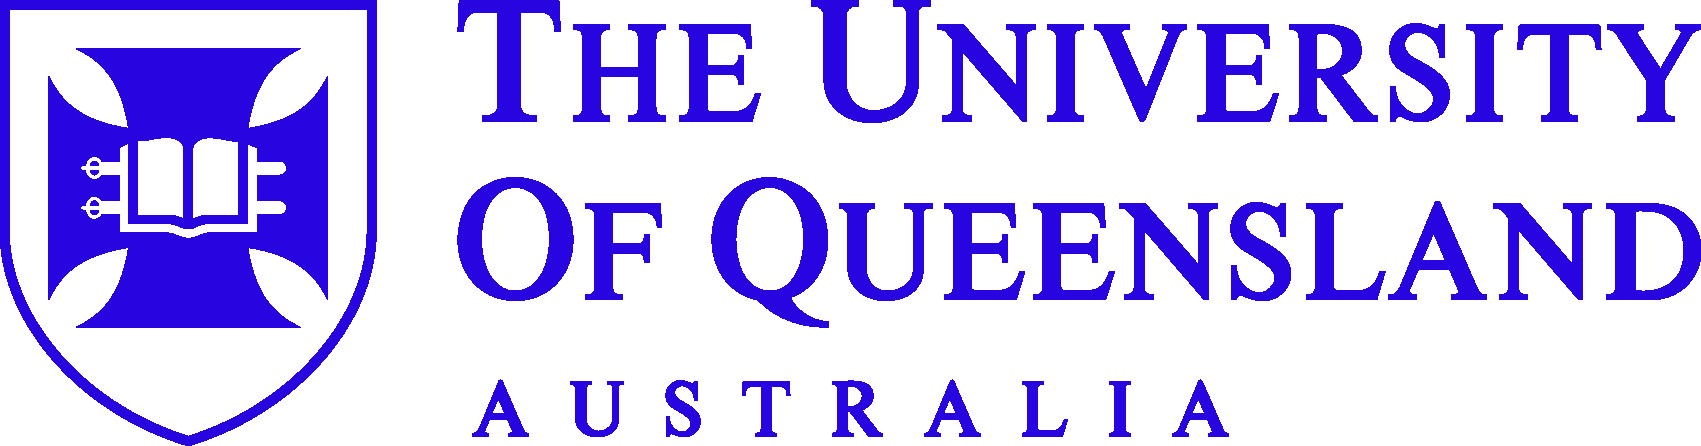 UQlogo-Purple-cmyk.jpg